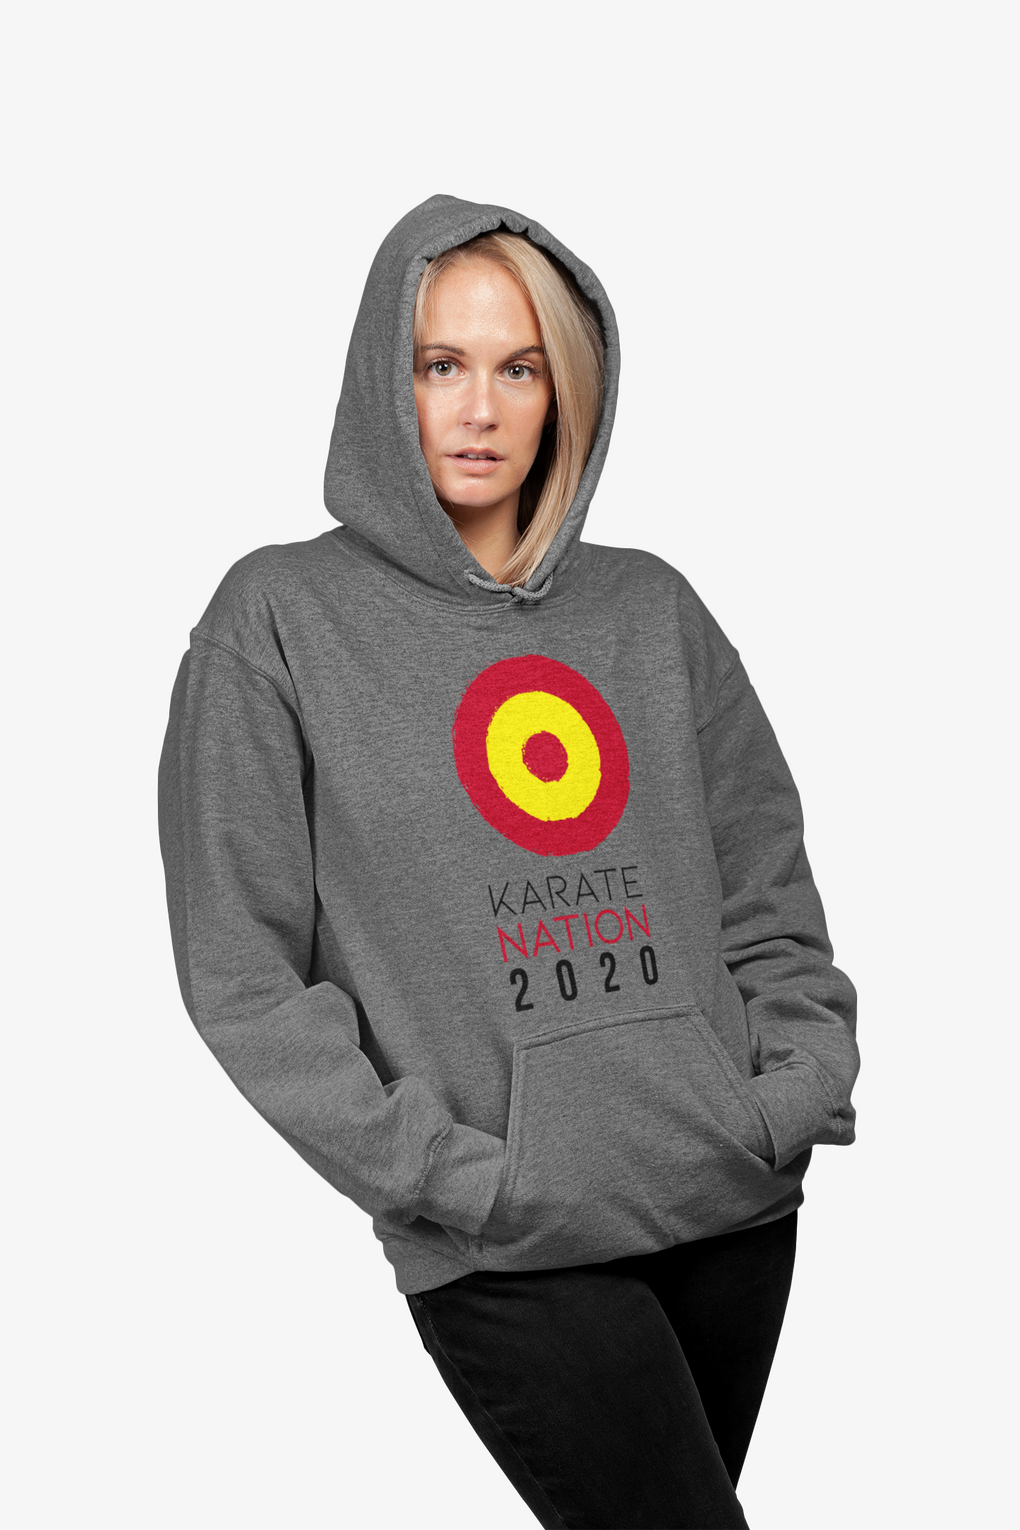 Karate Nation Spain Round Design Hoodie - Unisex